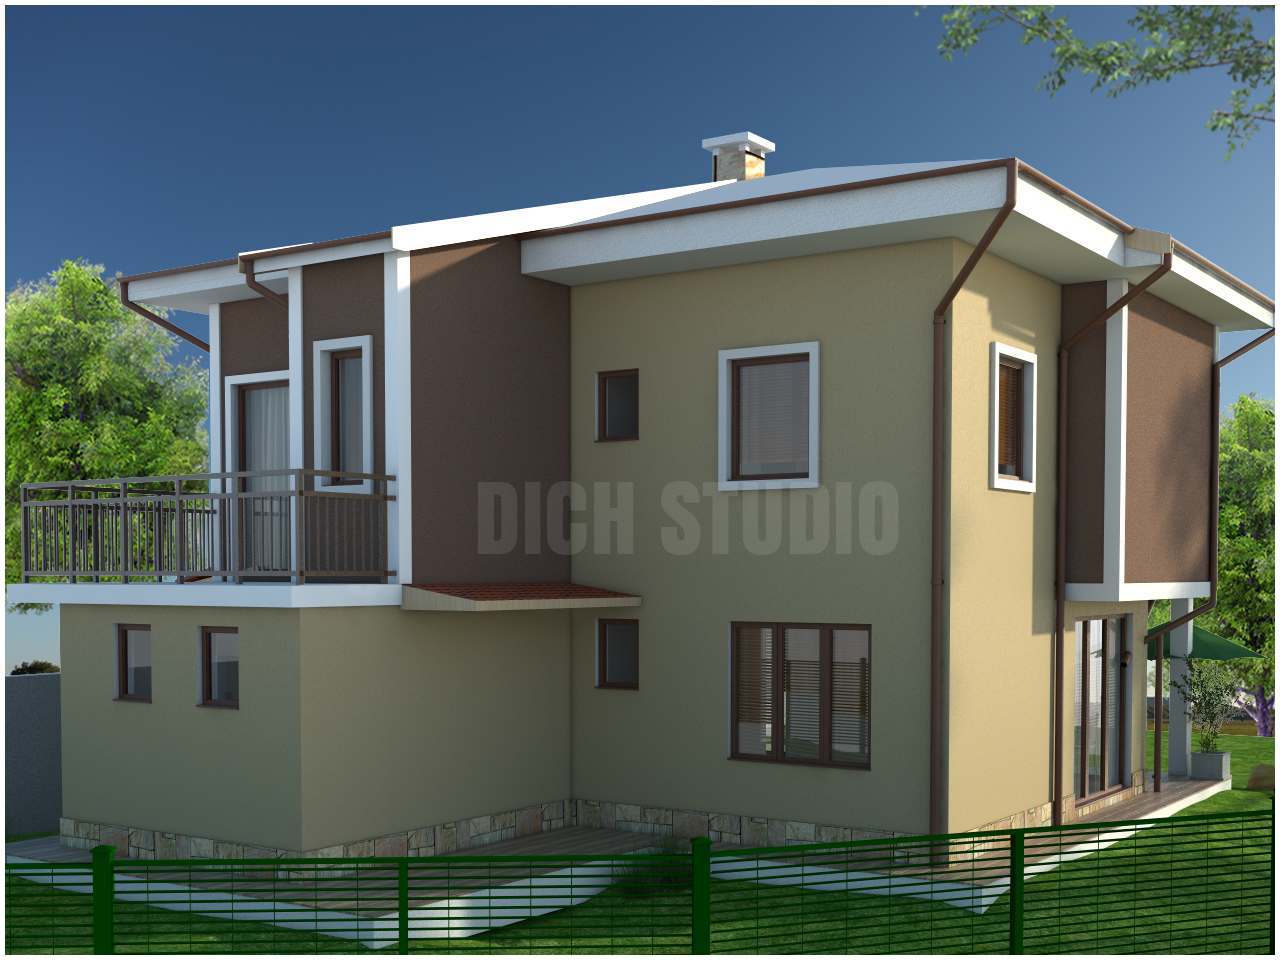 Family house project Sofia, architecture